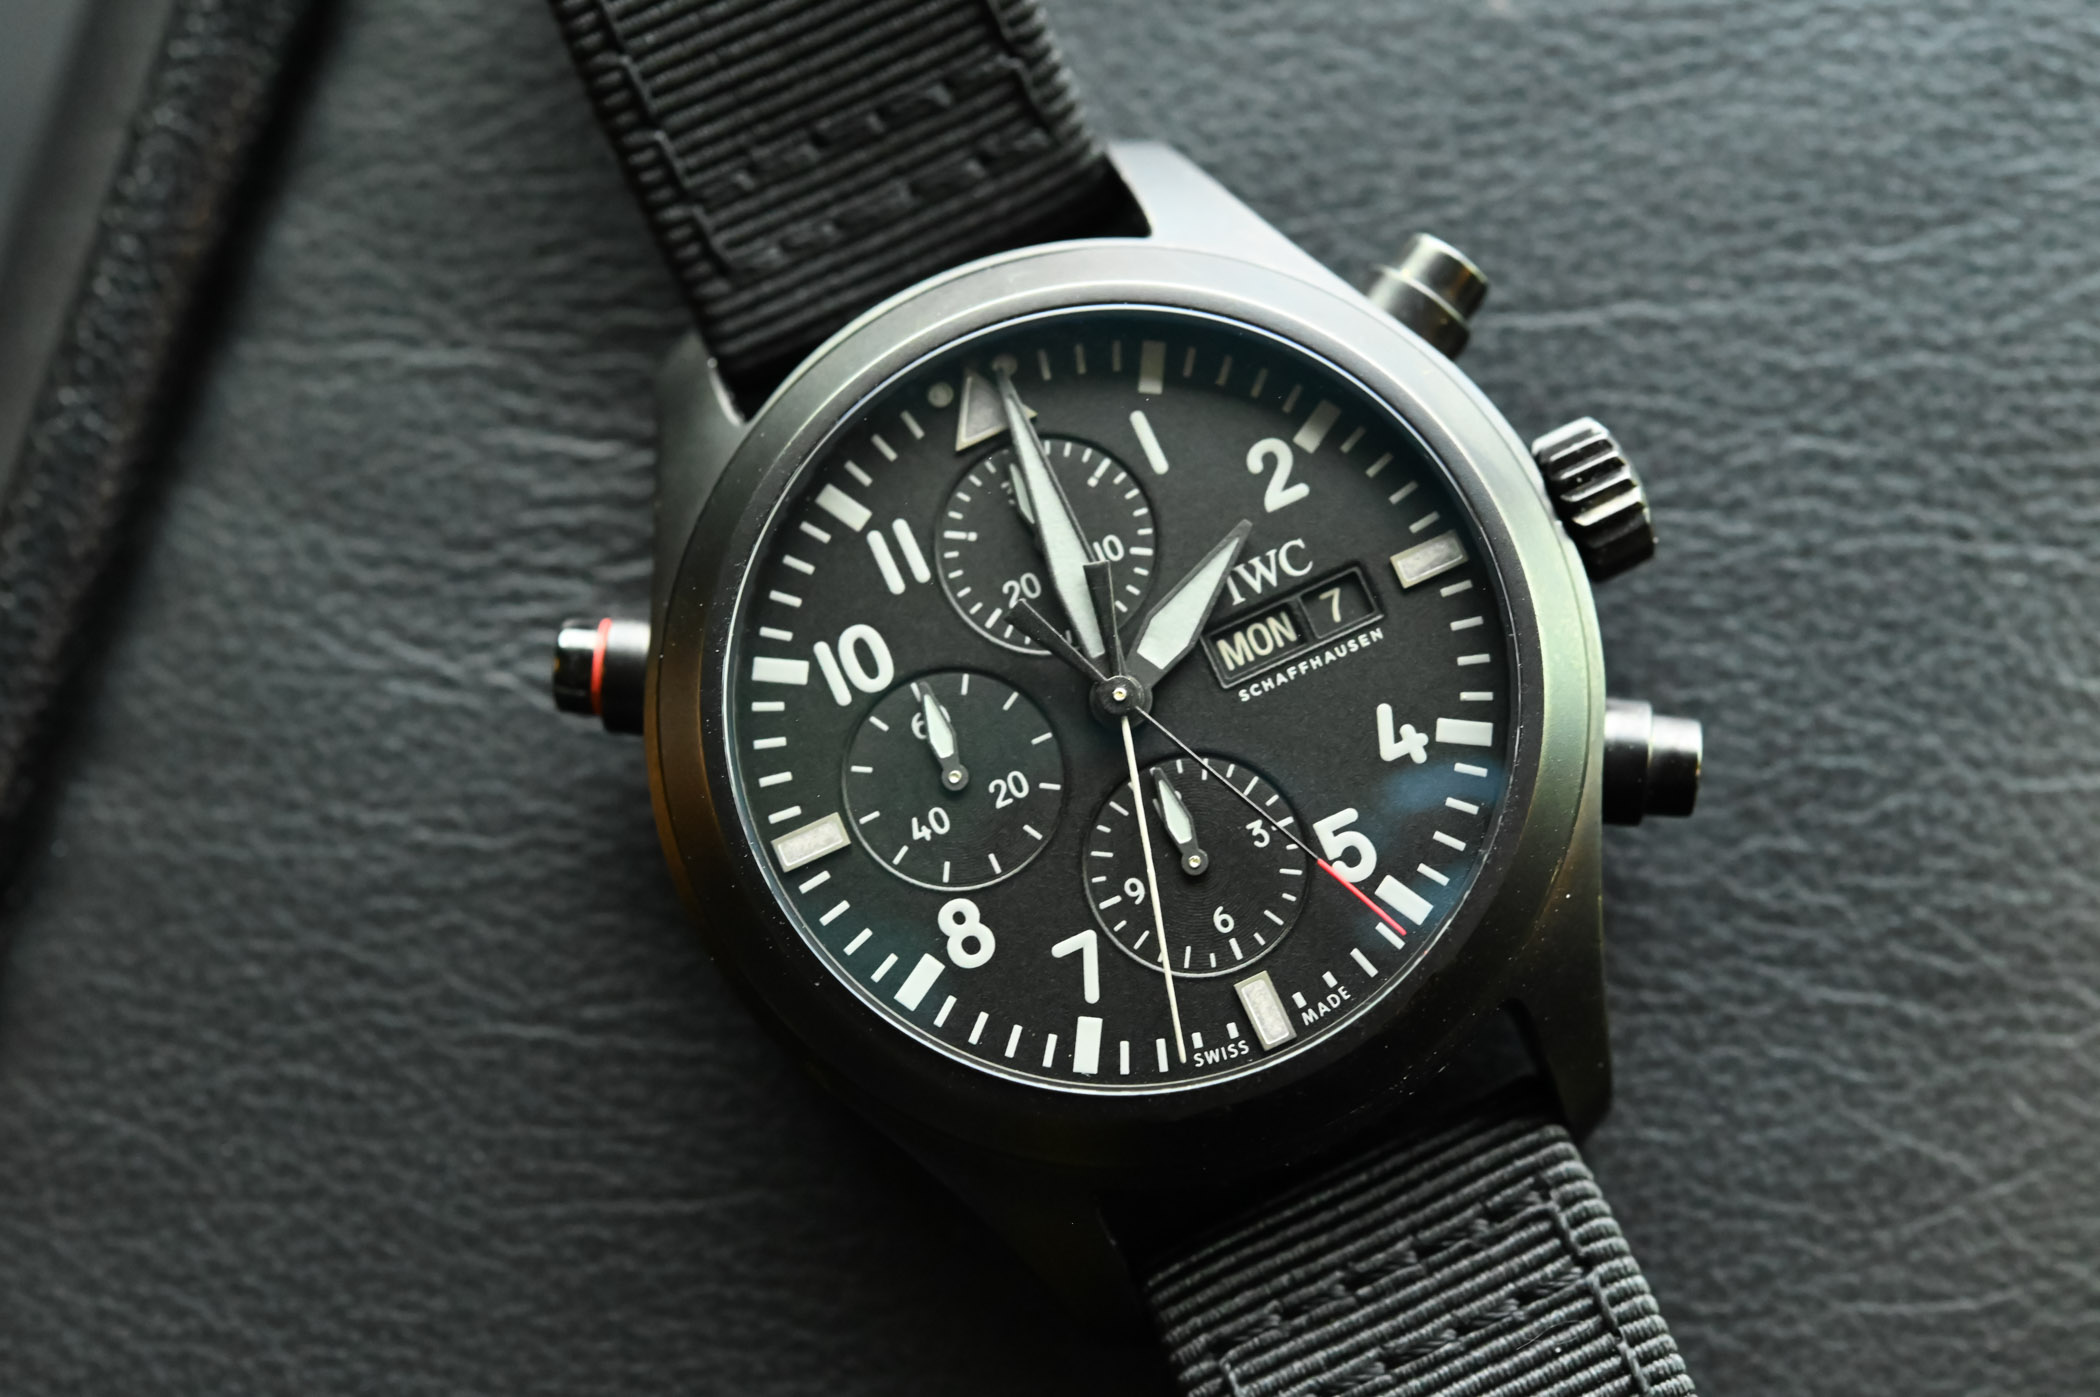 41c028a2d As part of the pre-SIHH 2019 launches, IWC is unveiling this all-black  rattrapante/split-seconds/ double chronograph/DoppelChronograph (choose  your ...